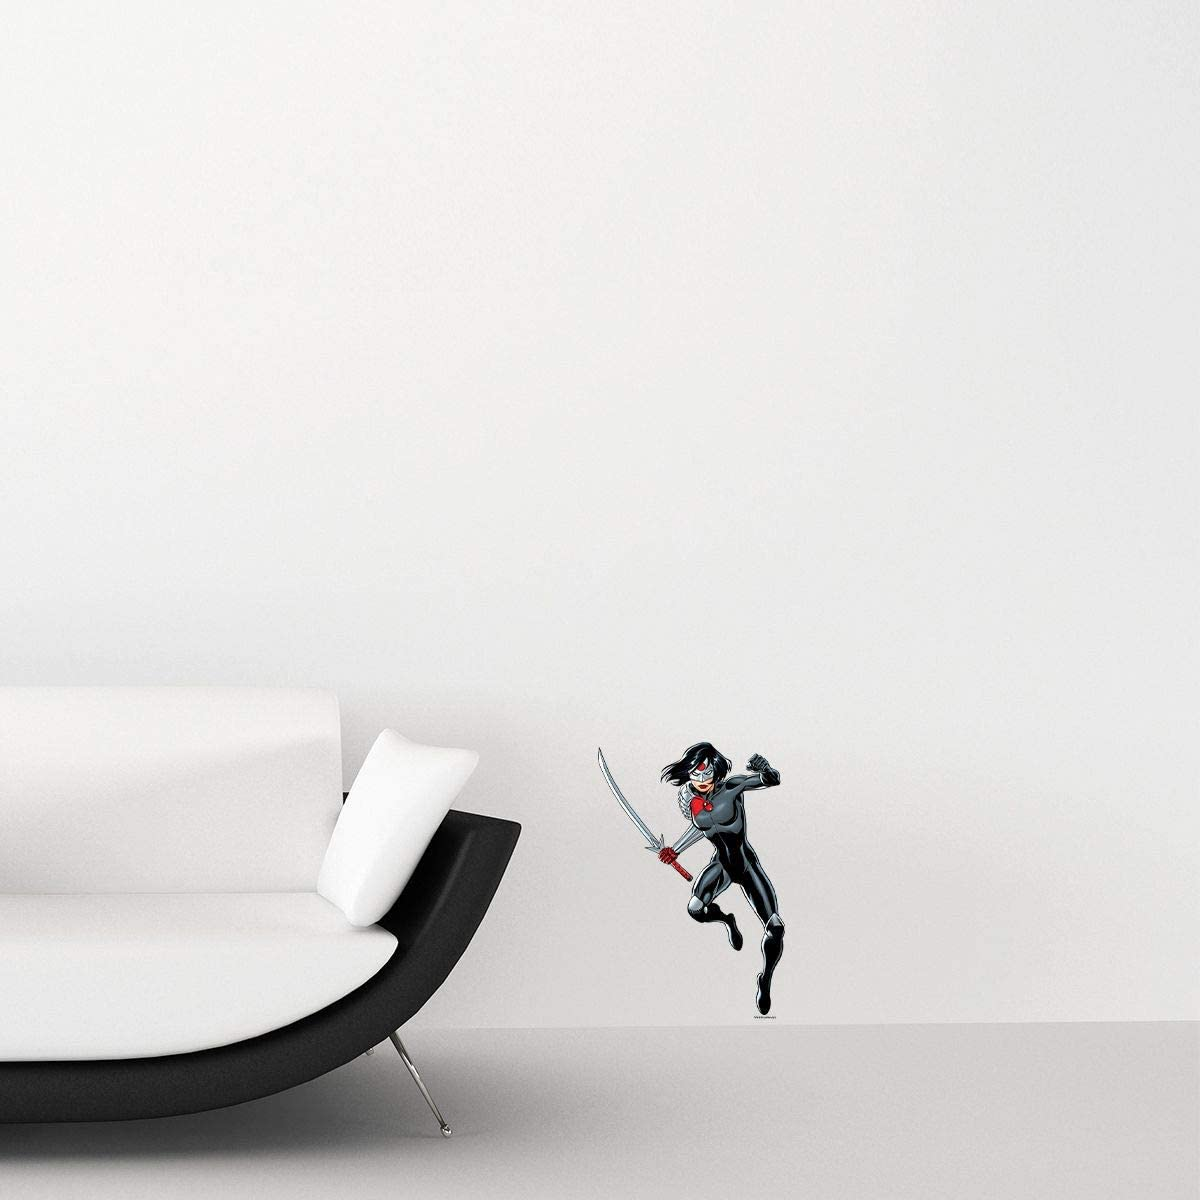 Kismet Decals Katana Leap Attack Officially Licensed Wall Sticker - Easy DIY Justice League Home, Kids or Adult Bedroom, Office, Living Room Decor Wall Art Decal Mural Small